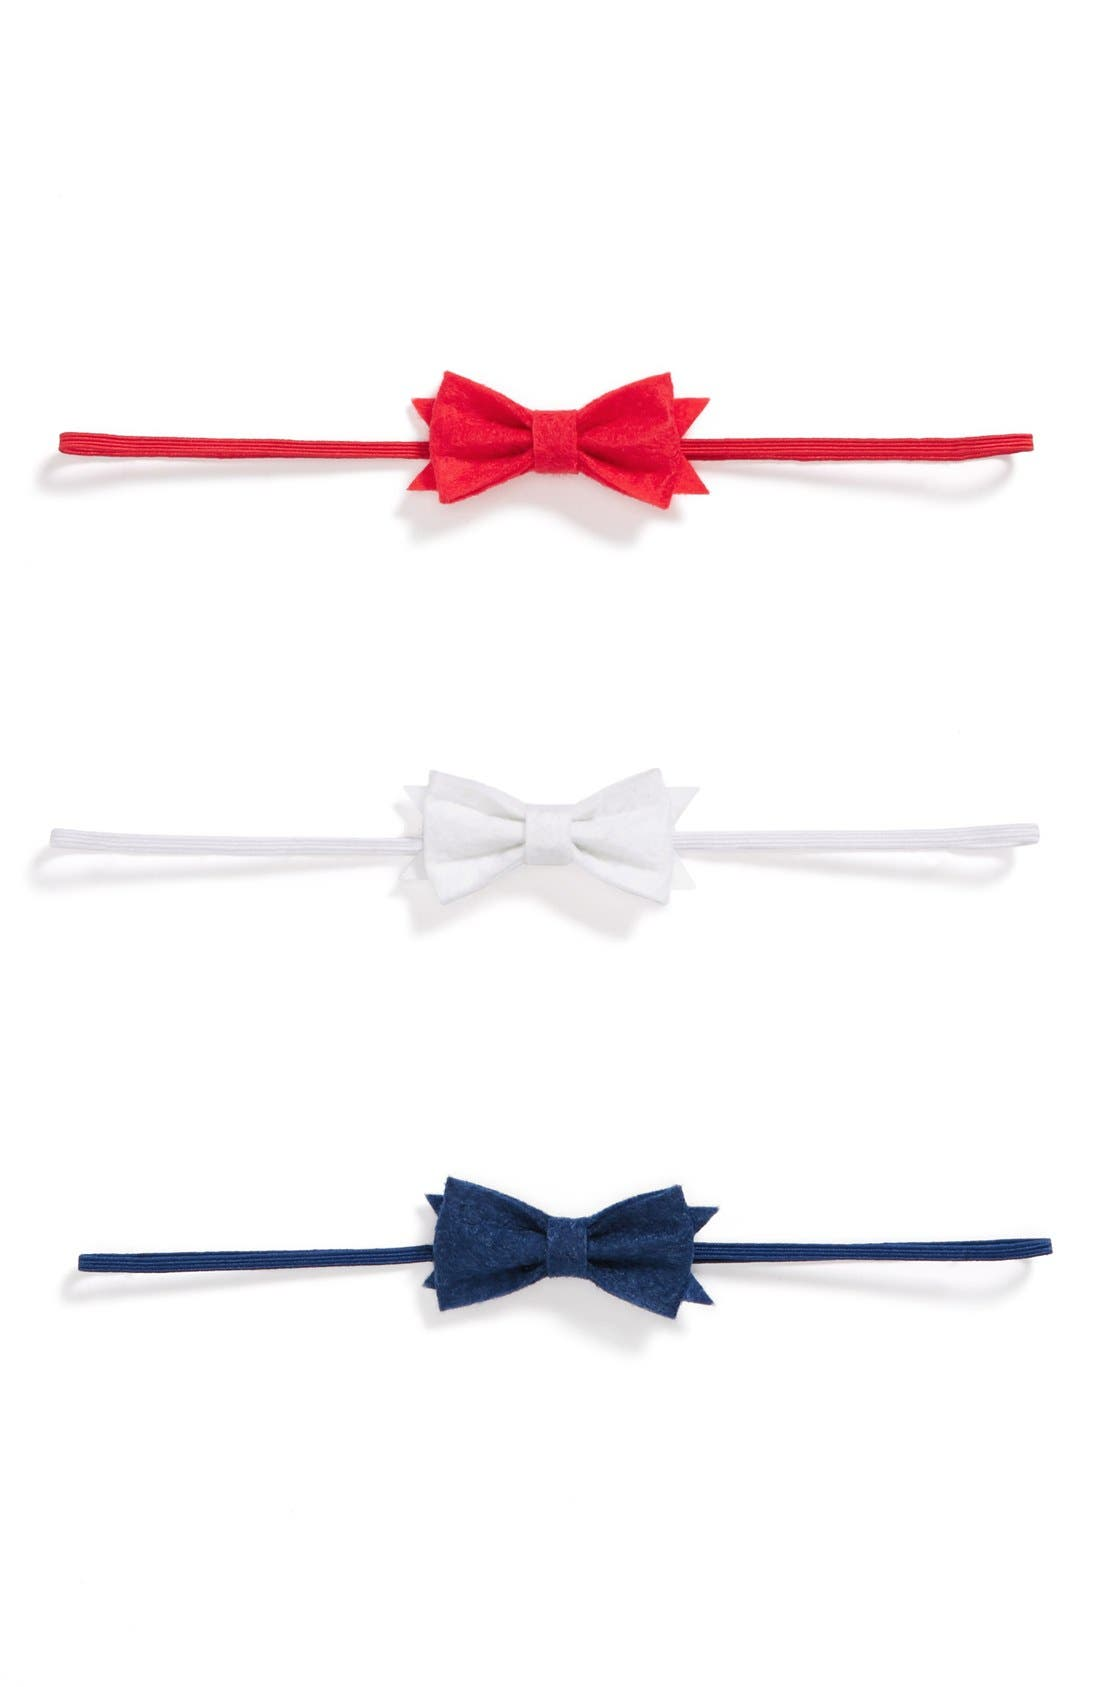 Alternate Image 1 Selected - Baby Bling Bow Headbands (Set of 3) (Baby Girls)